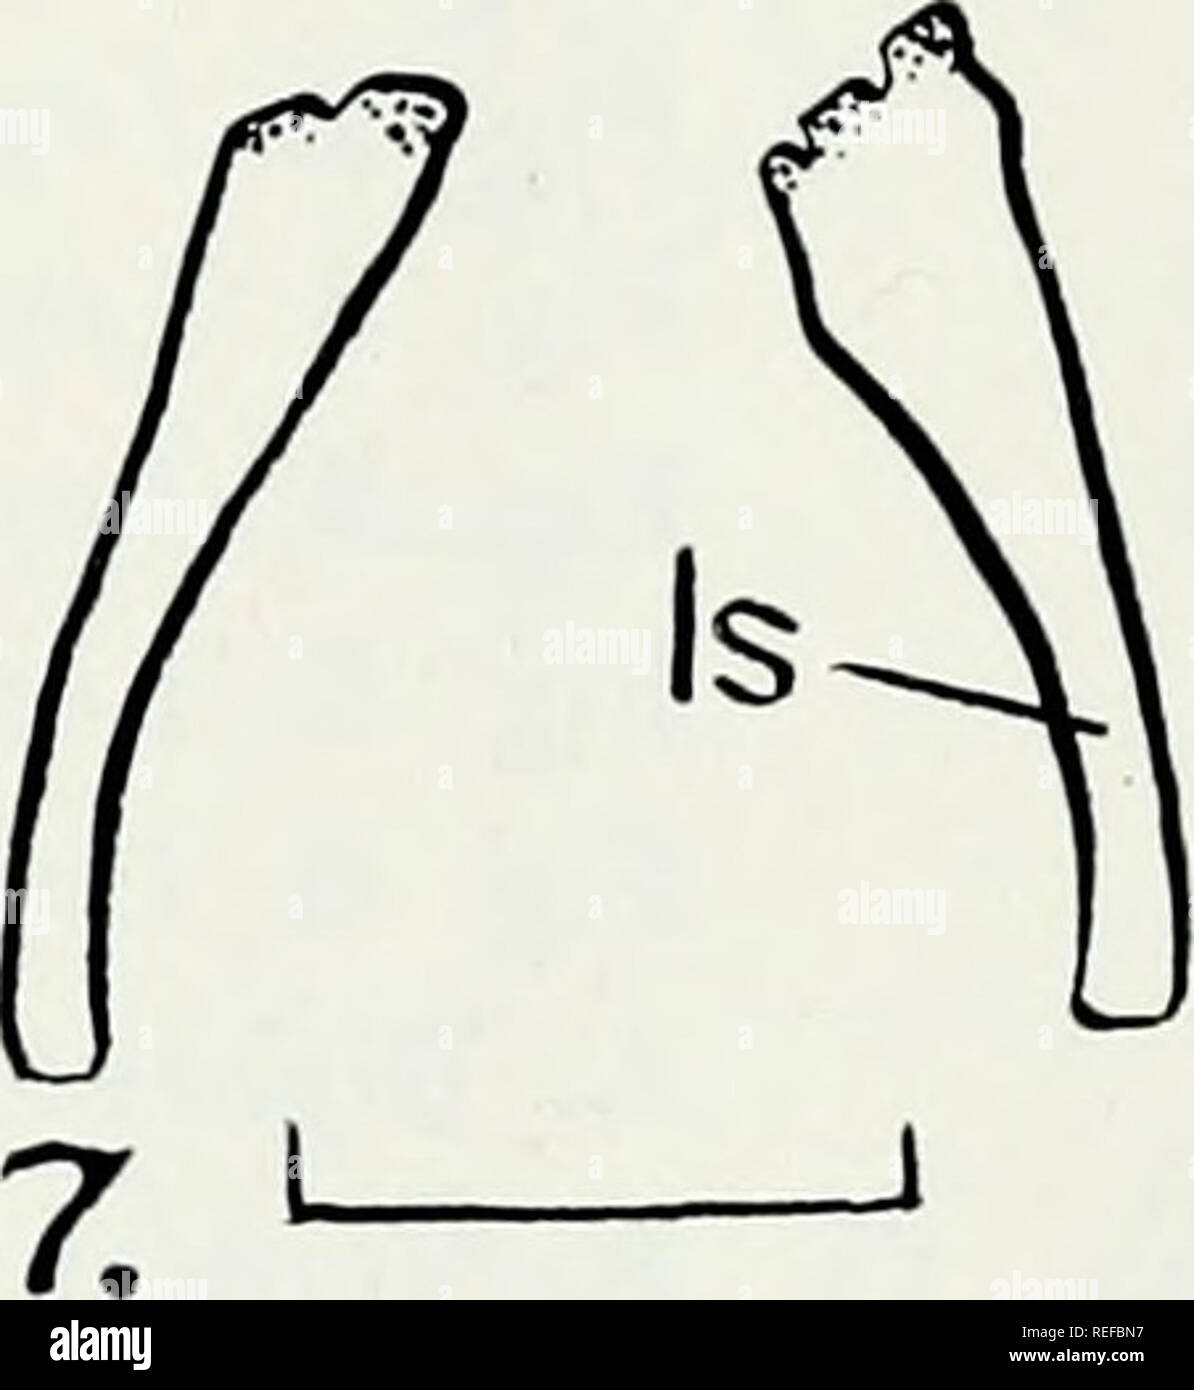 . Comparative osteology of the snake families Typhlopidae and Leptotyphlopidae. Reptiles; Leptotyphlopidae; Typhlopidae. 3.A Is 5. B ' ' — 8. L 1 4. A 4. B L Is, Is^. W II Is 9. I. Please note that these images are extracted from scanned page images that may have been digitally enhanced for readability - coloration and appearance of these illustrations may not perfectly resemble the original work.. List, James Carl, 1926-. Urbana, University of Illinois Press - Stock Image